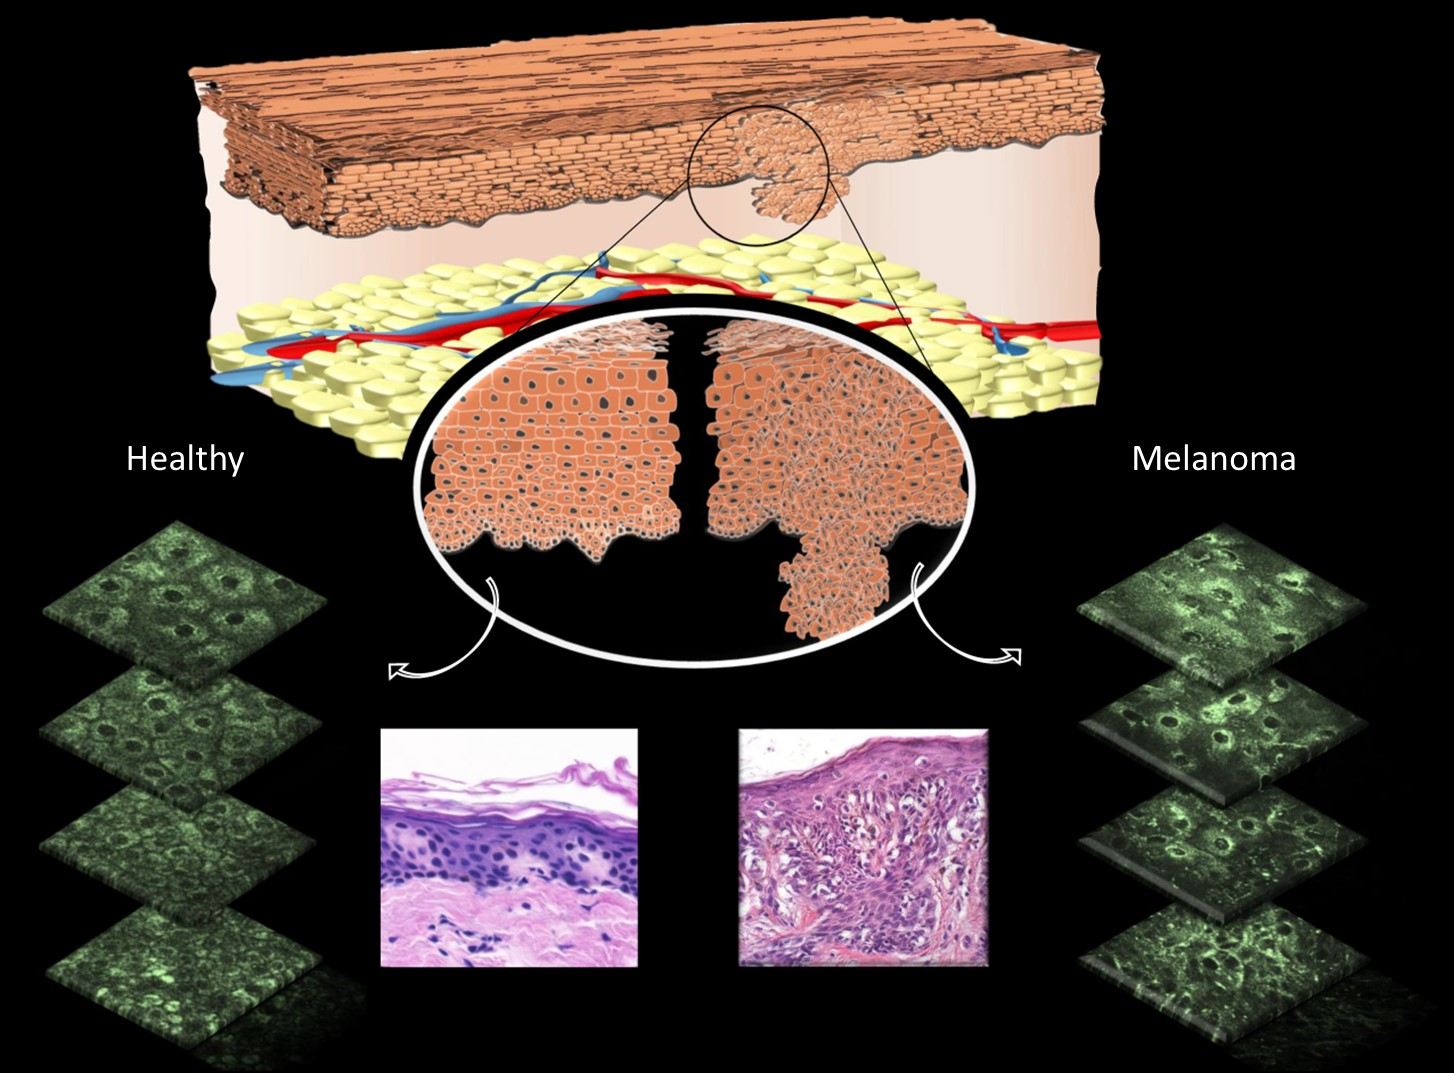 Diagram of melanoma formation and detection in basal skin layers